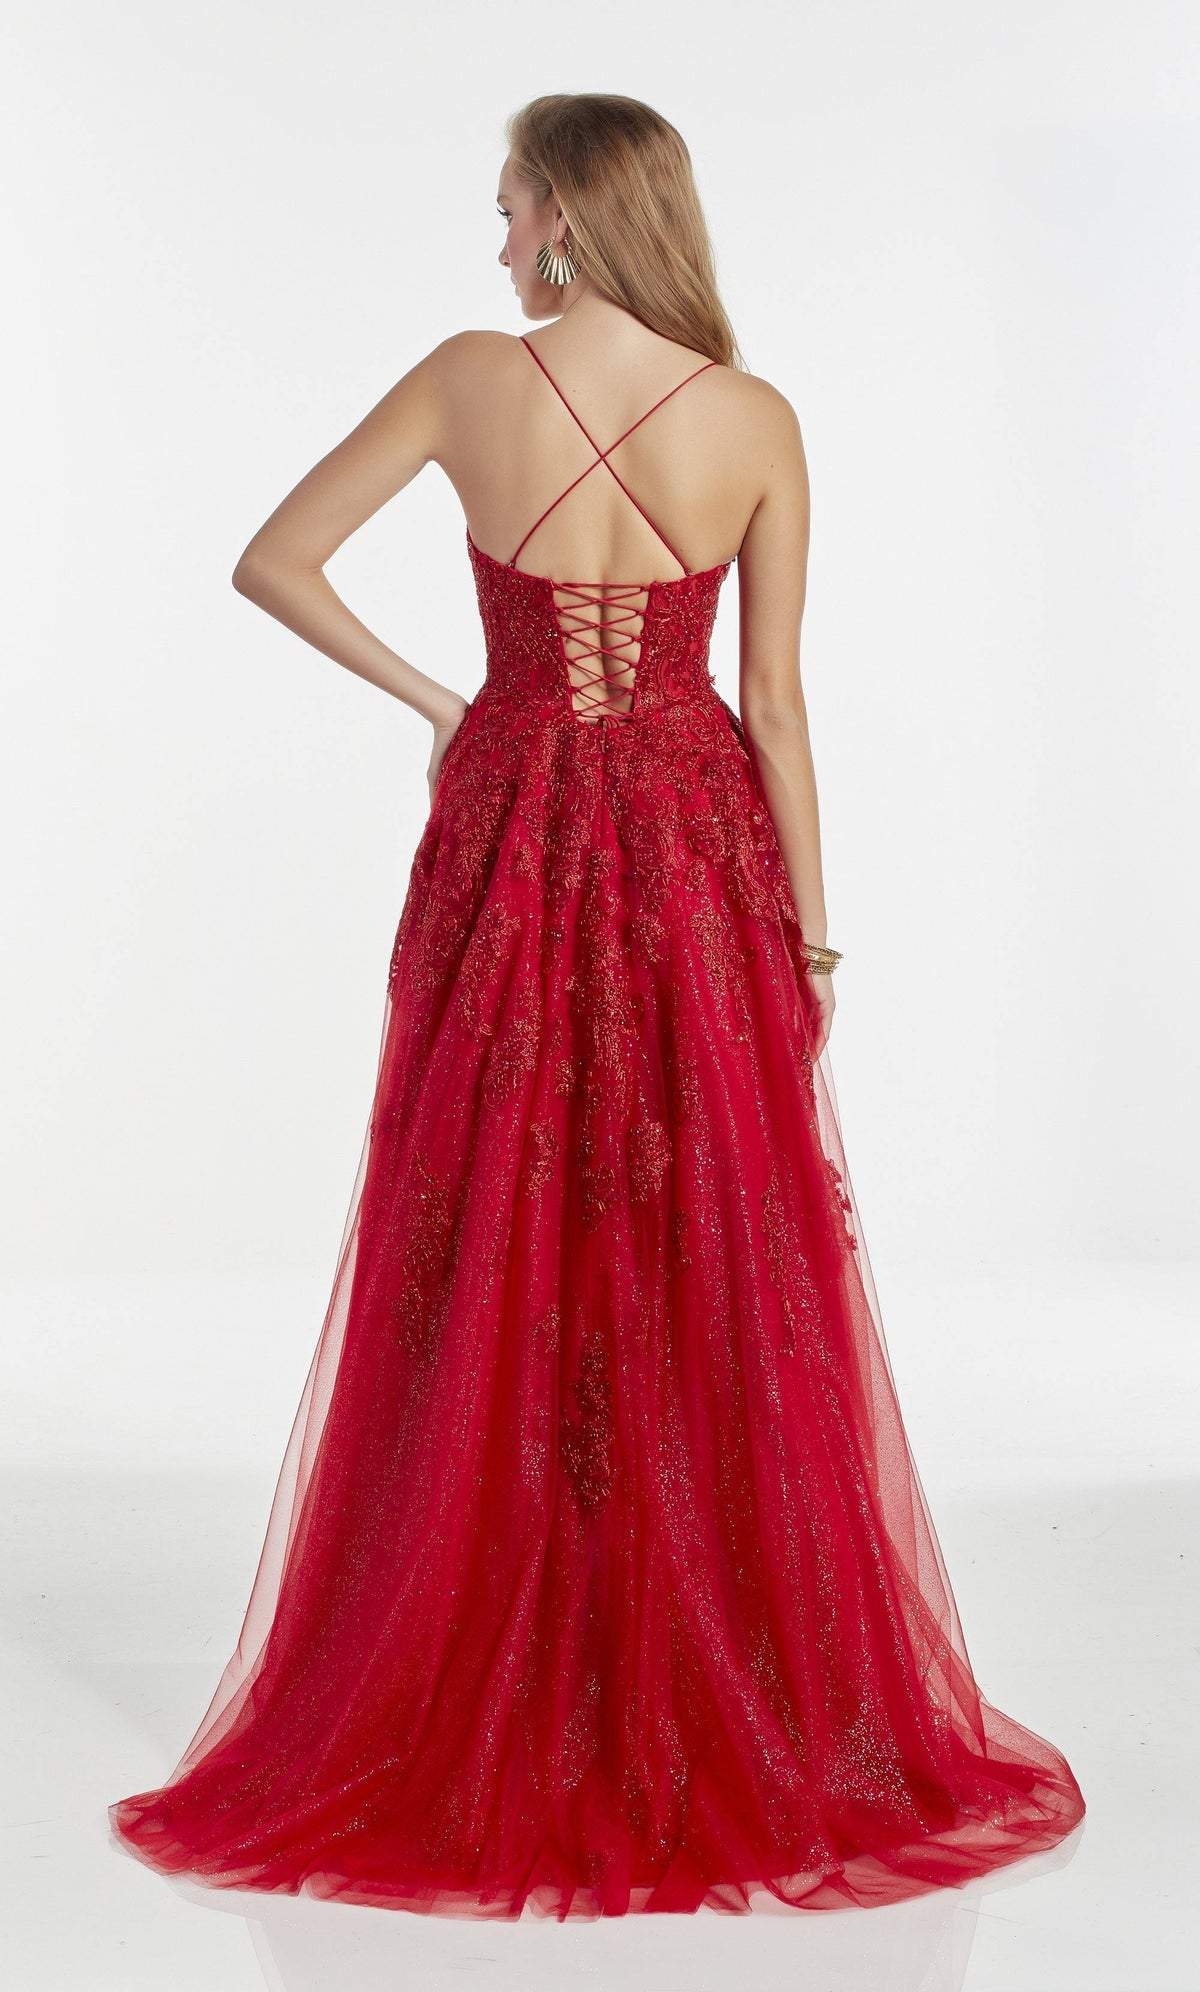 Glitter tulle ballgown with a strappy back and embroidery detail